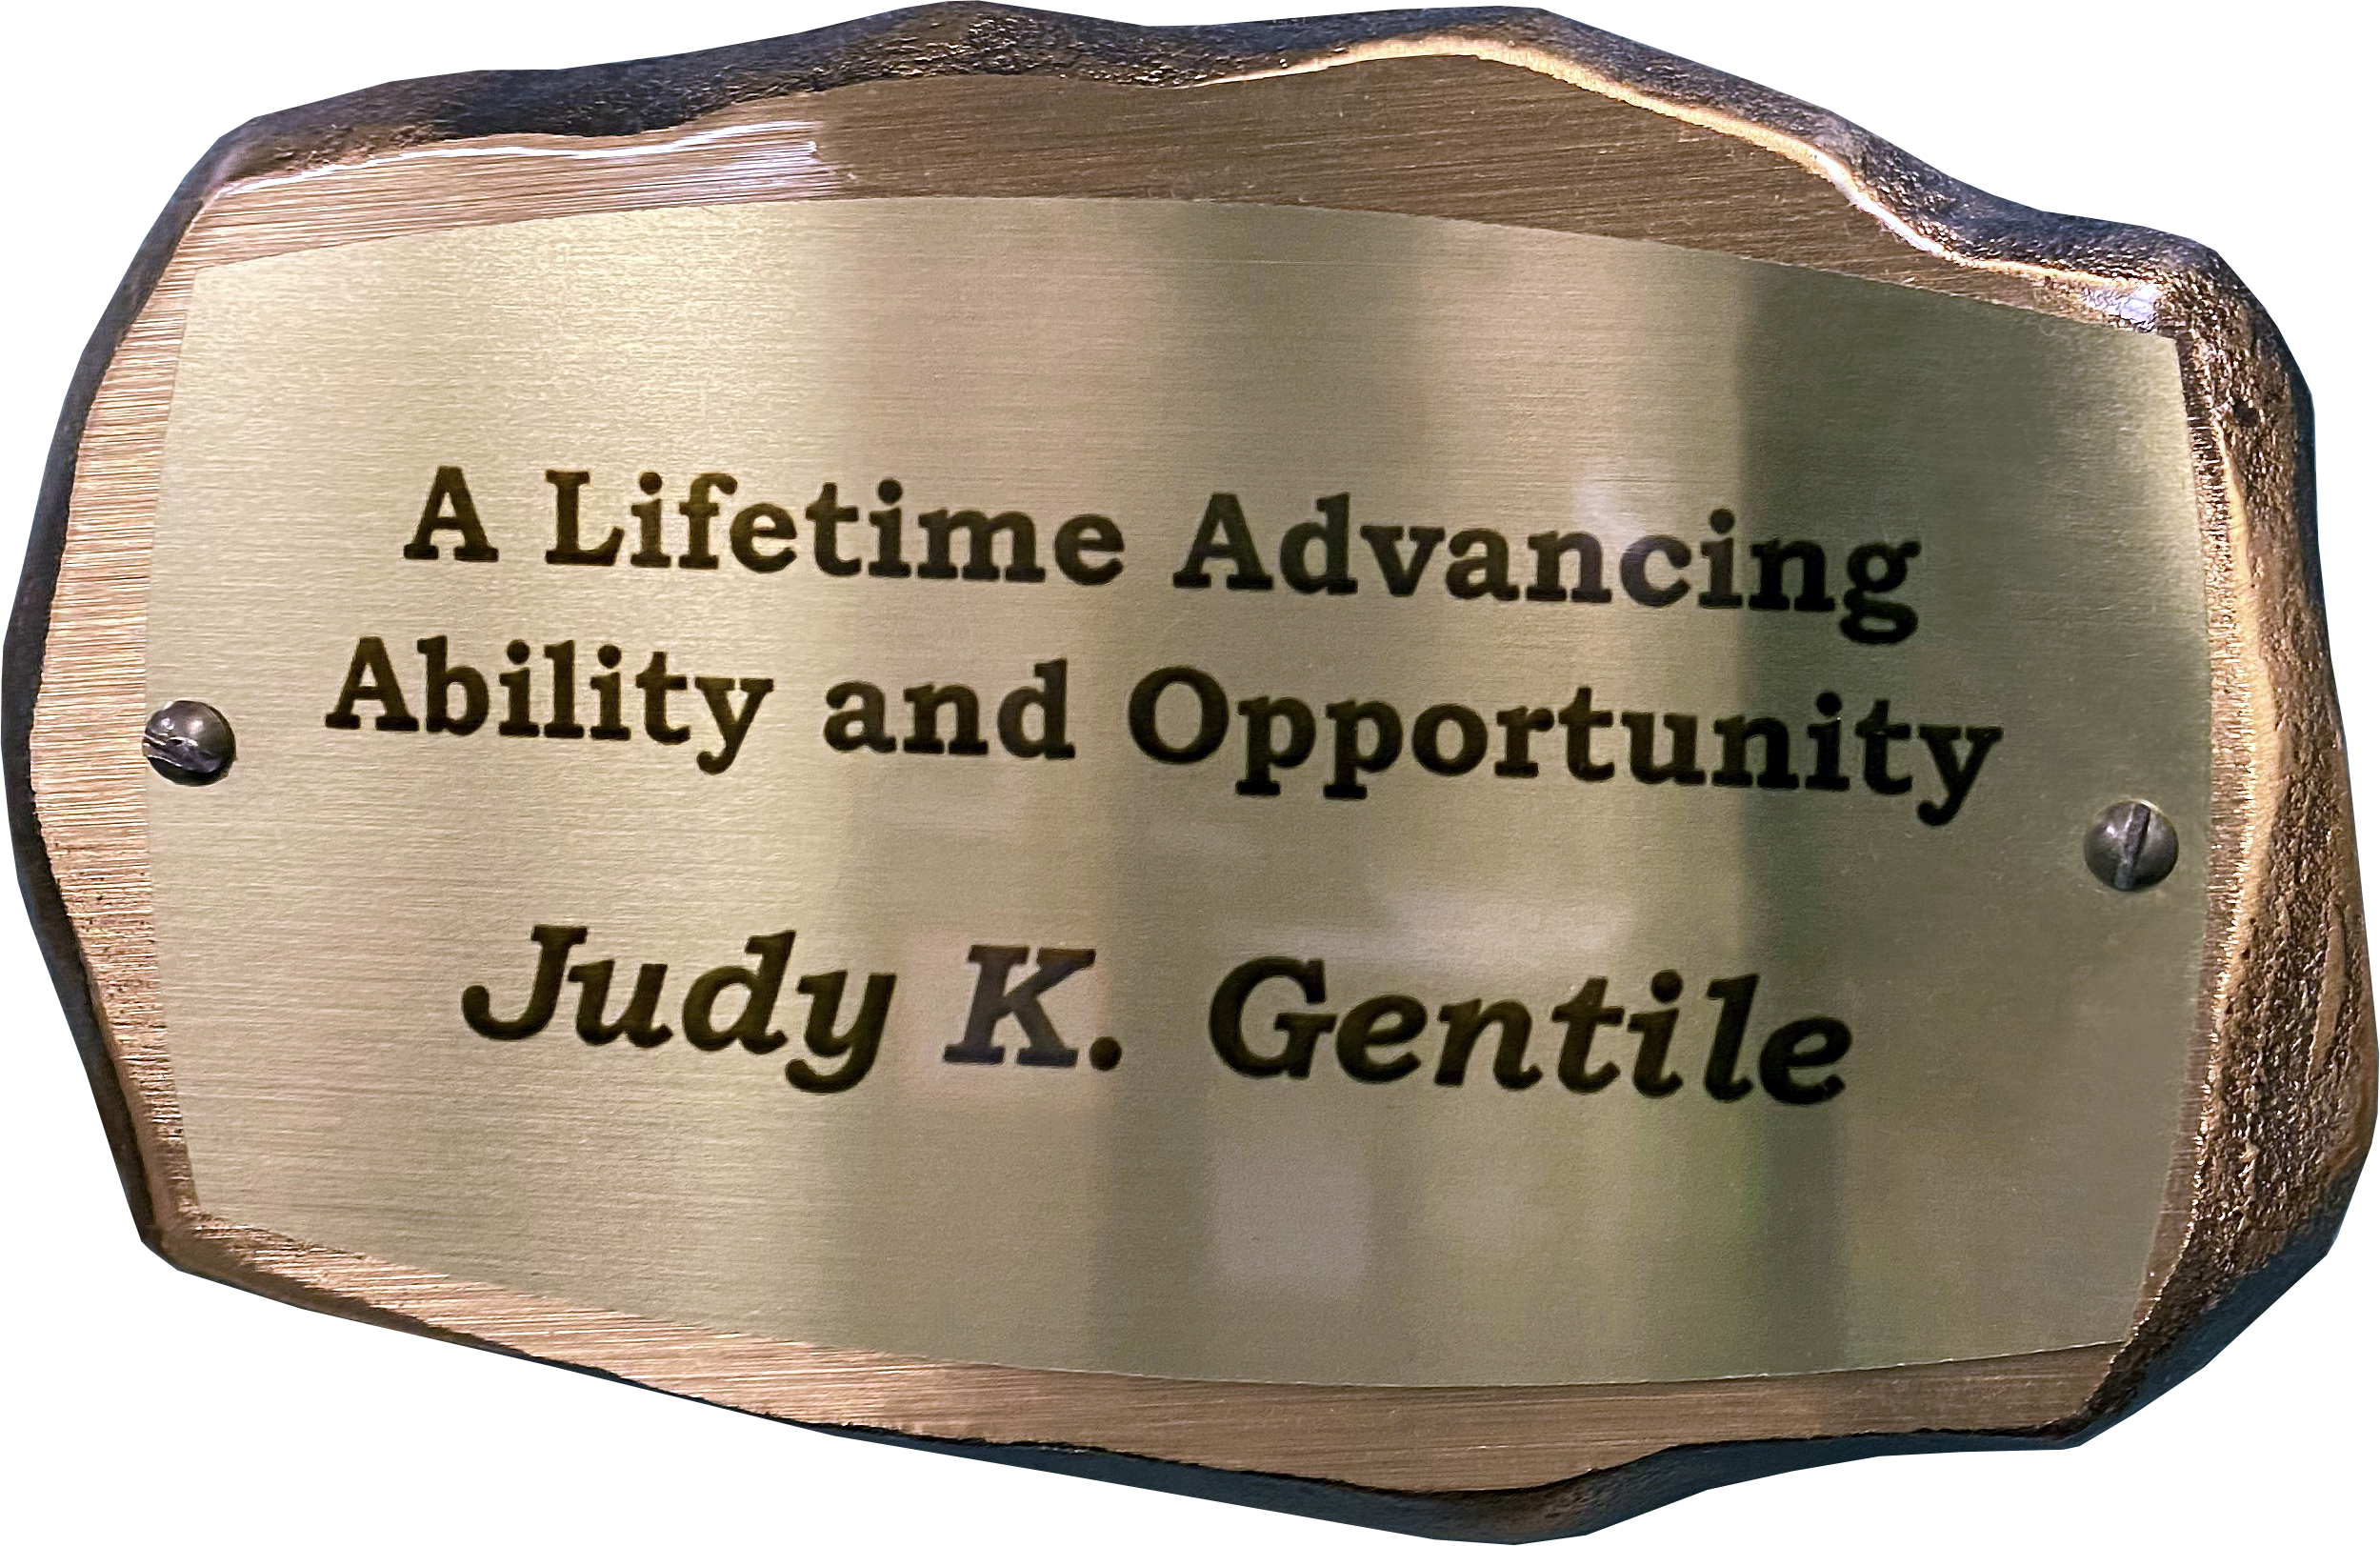 Inscribed bronze plaque in the shape of a rock with text on it reading: A Lifetime Advancing Ability and Opportunity. Judy K. Gentile